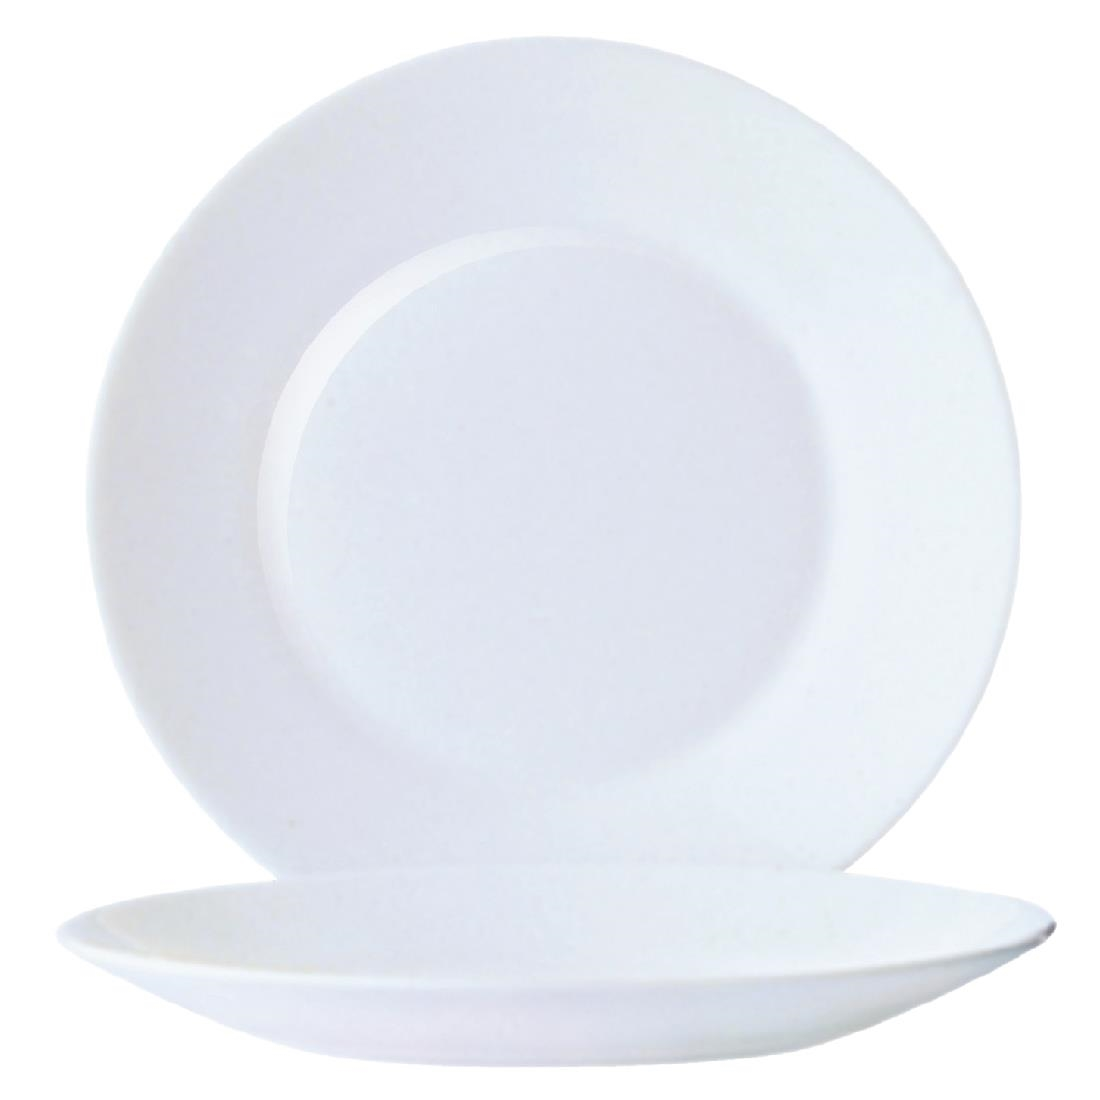 Image of Arcoroc Opal Restaurant Wide Rim Plates 235mm (Pack of 6) Pack of 6